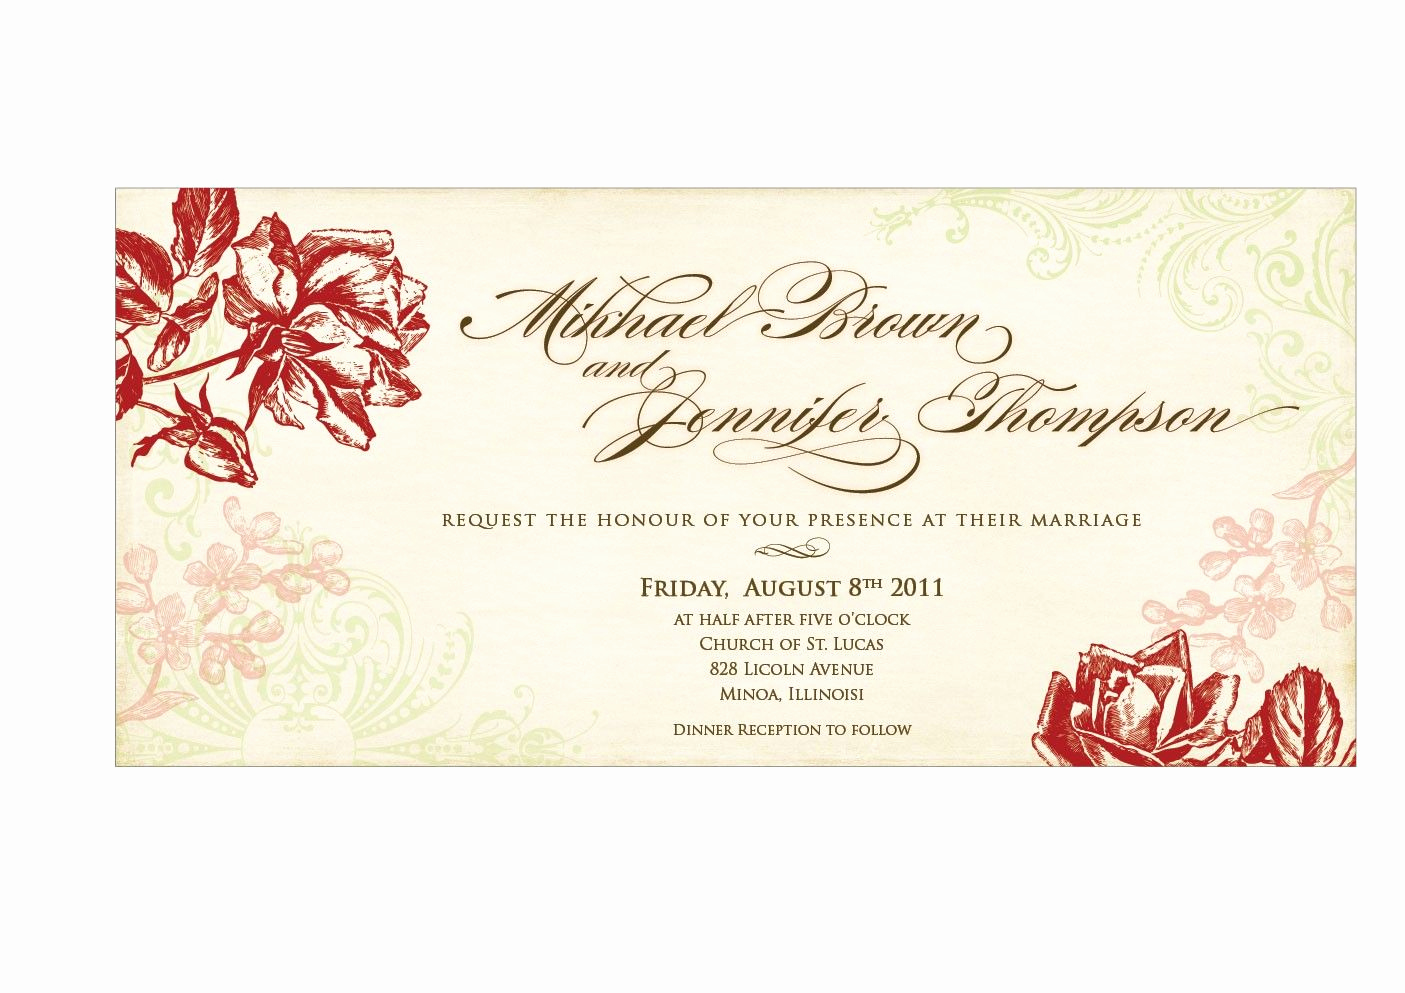 Wedding Invitation Design Templates Inspirational Wedding Invitation Templates